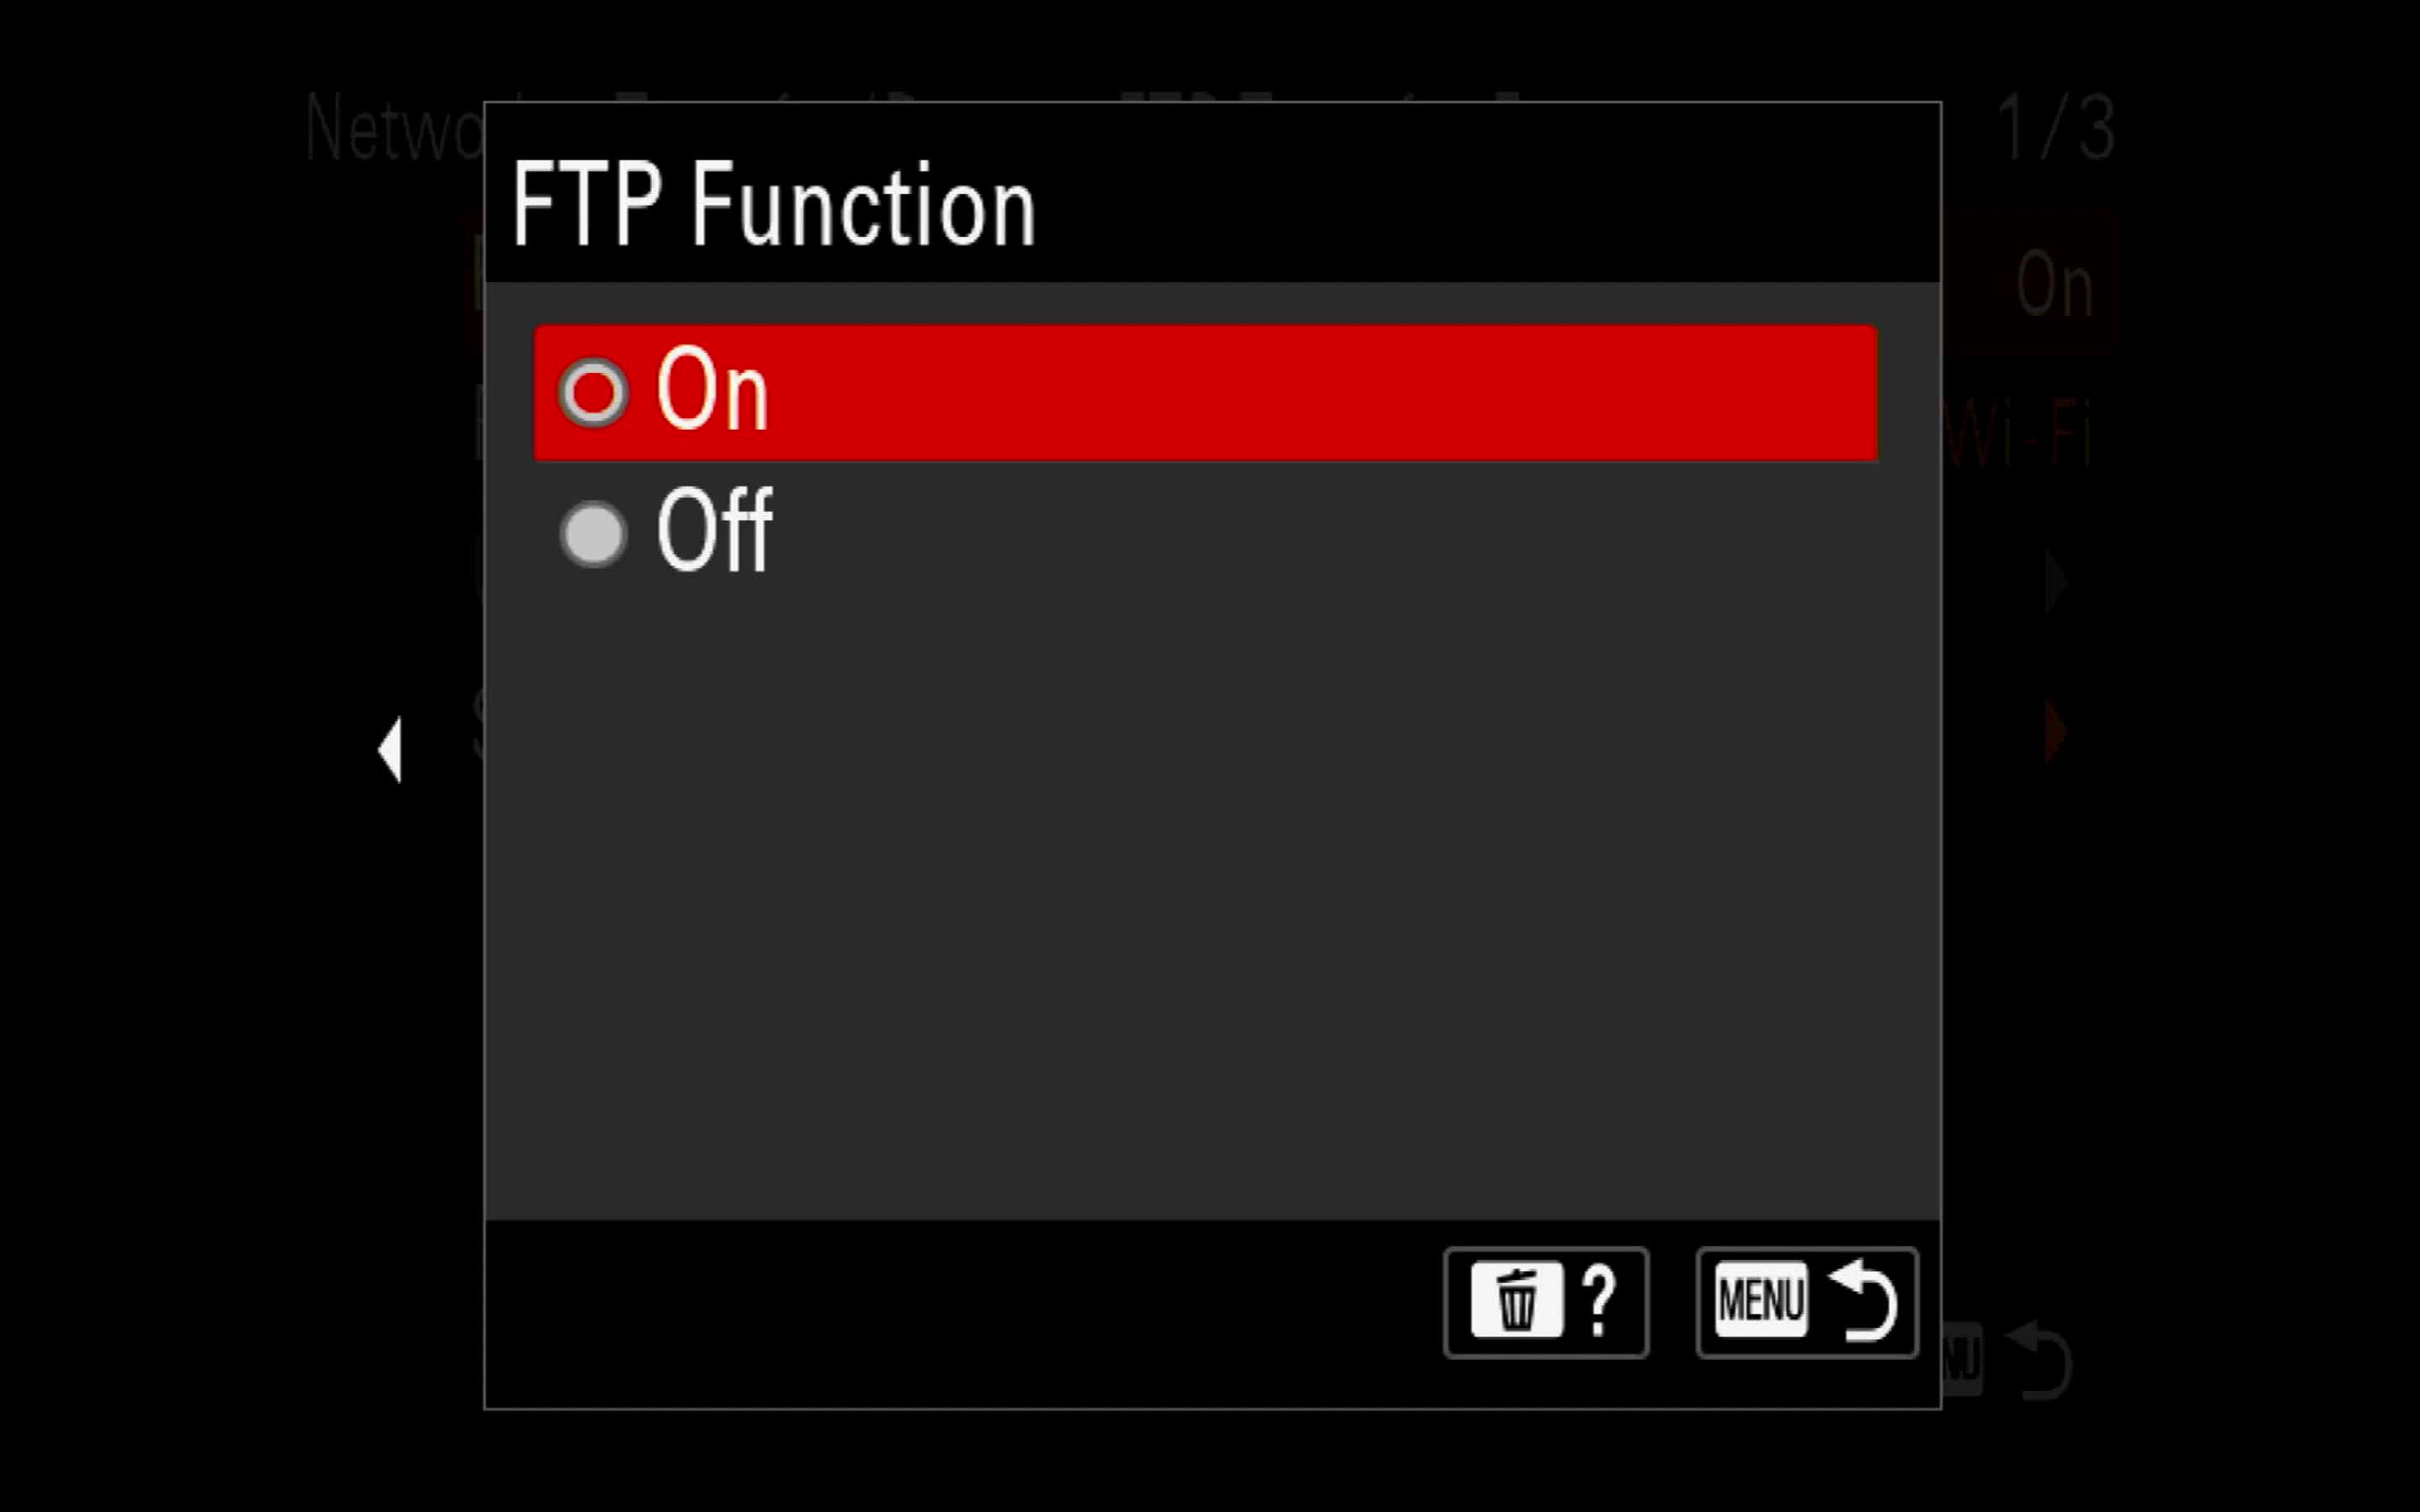 FTP_Function_On.jpg